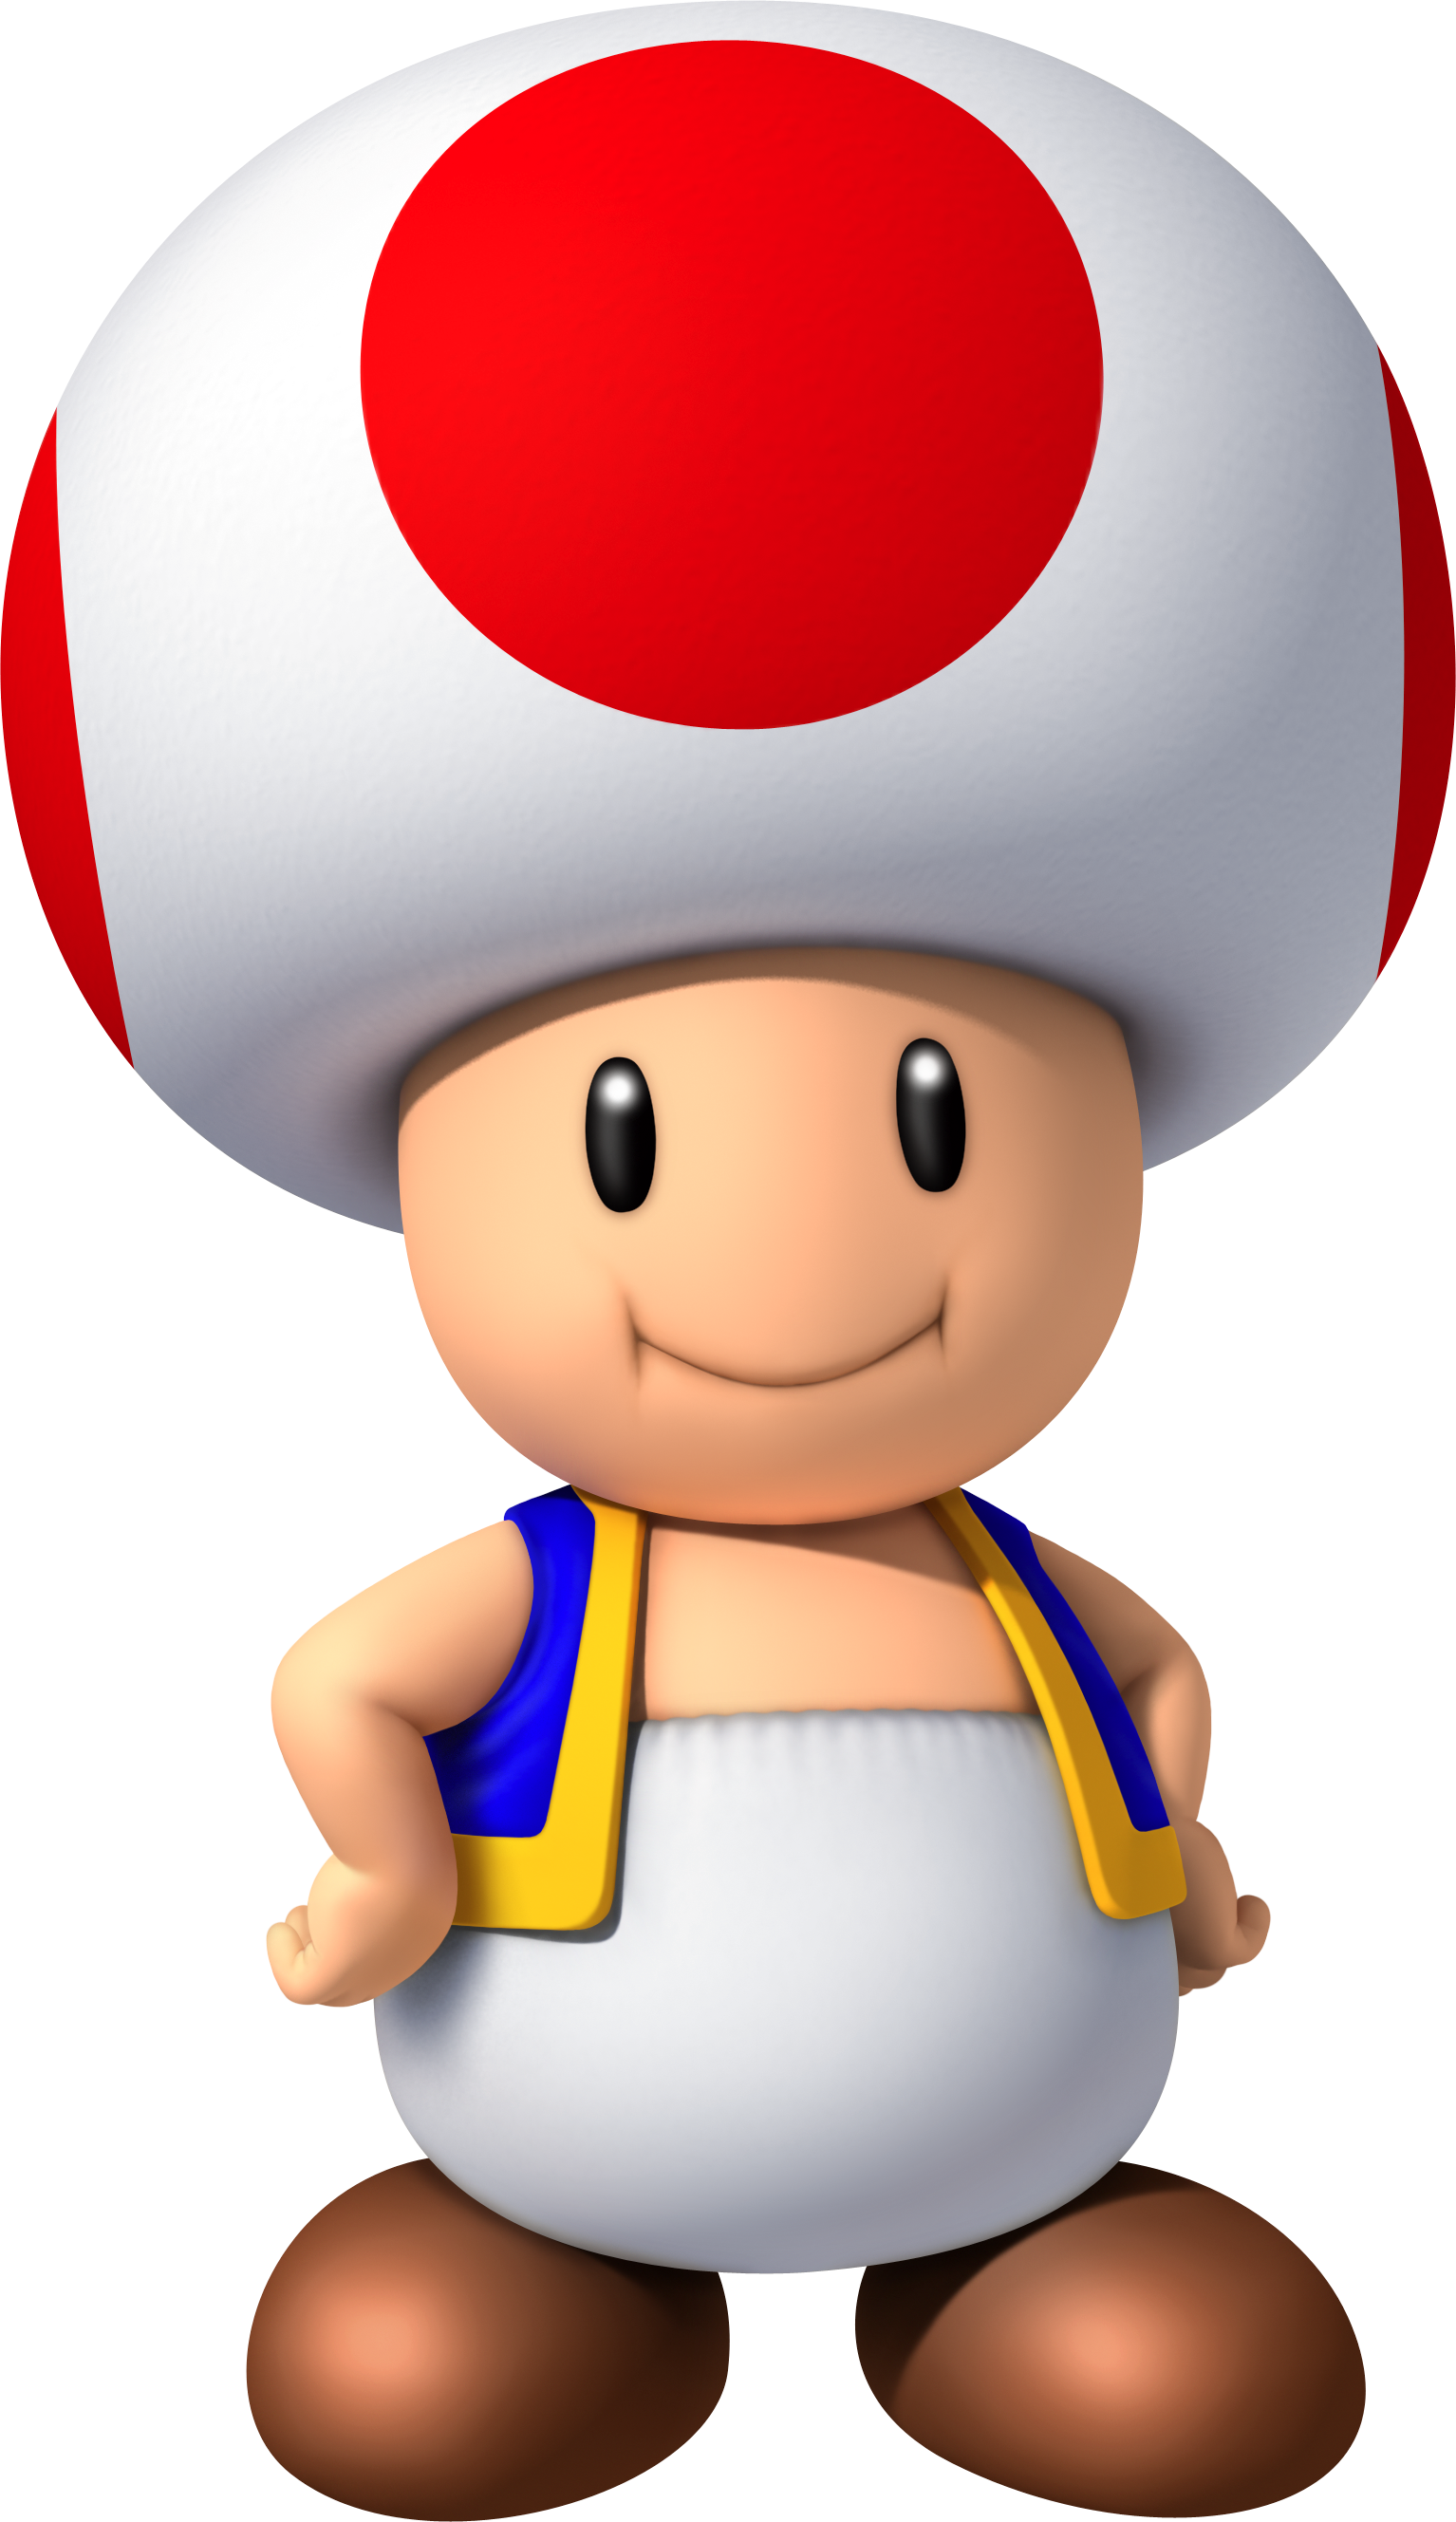 Toad (Charakter) | MarioWiki | FANDOM powered by Wikia